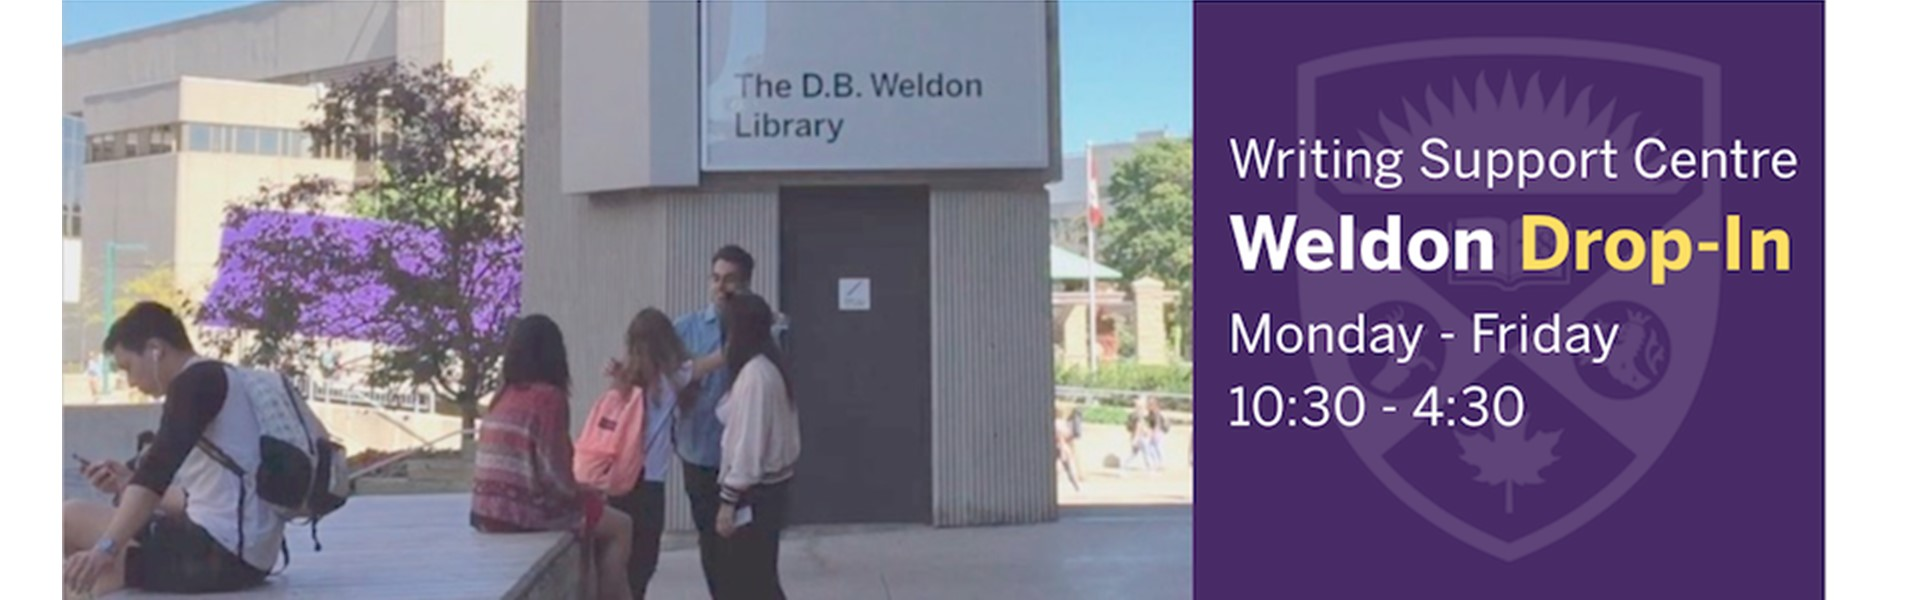 Writing Support Centre drop-in at Weldon 102A Monday-Friday 10:30-4:30